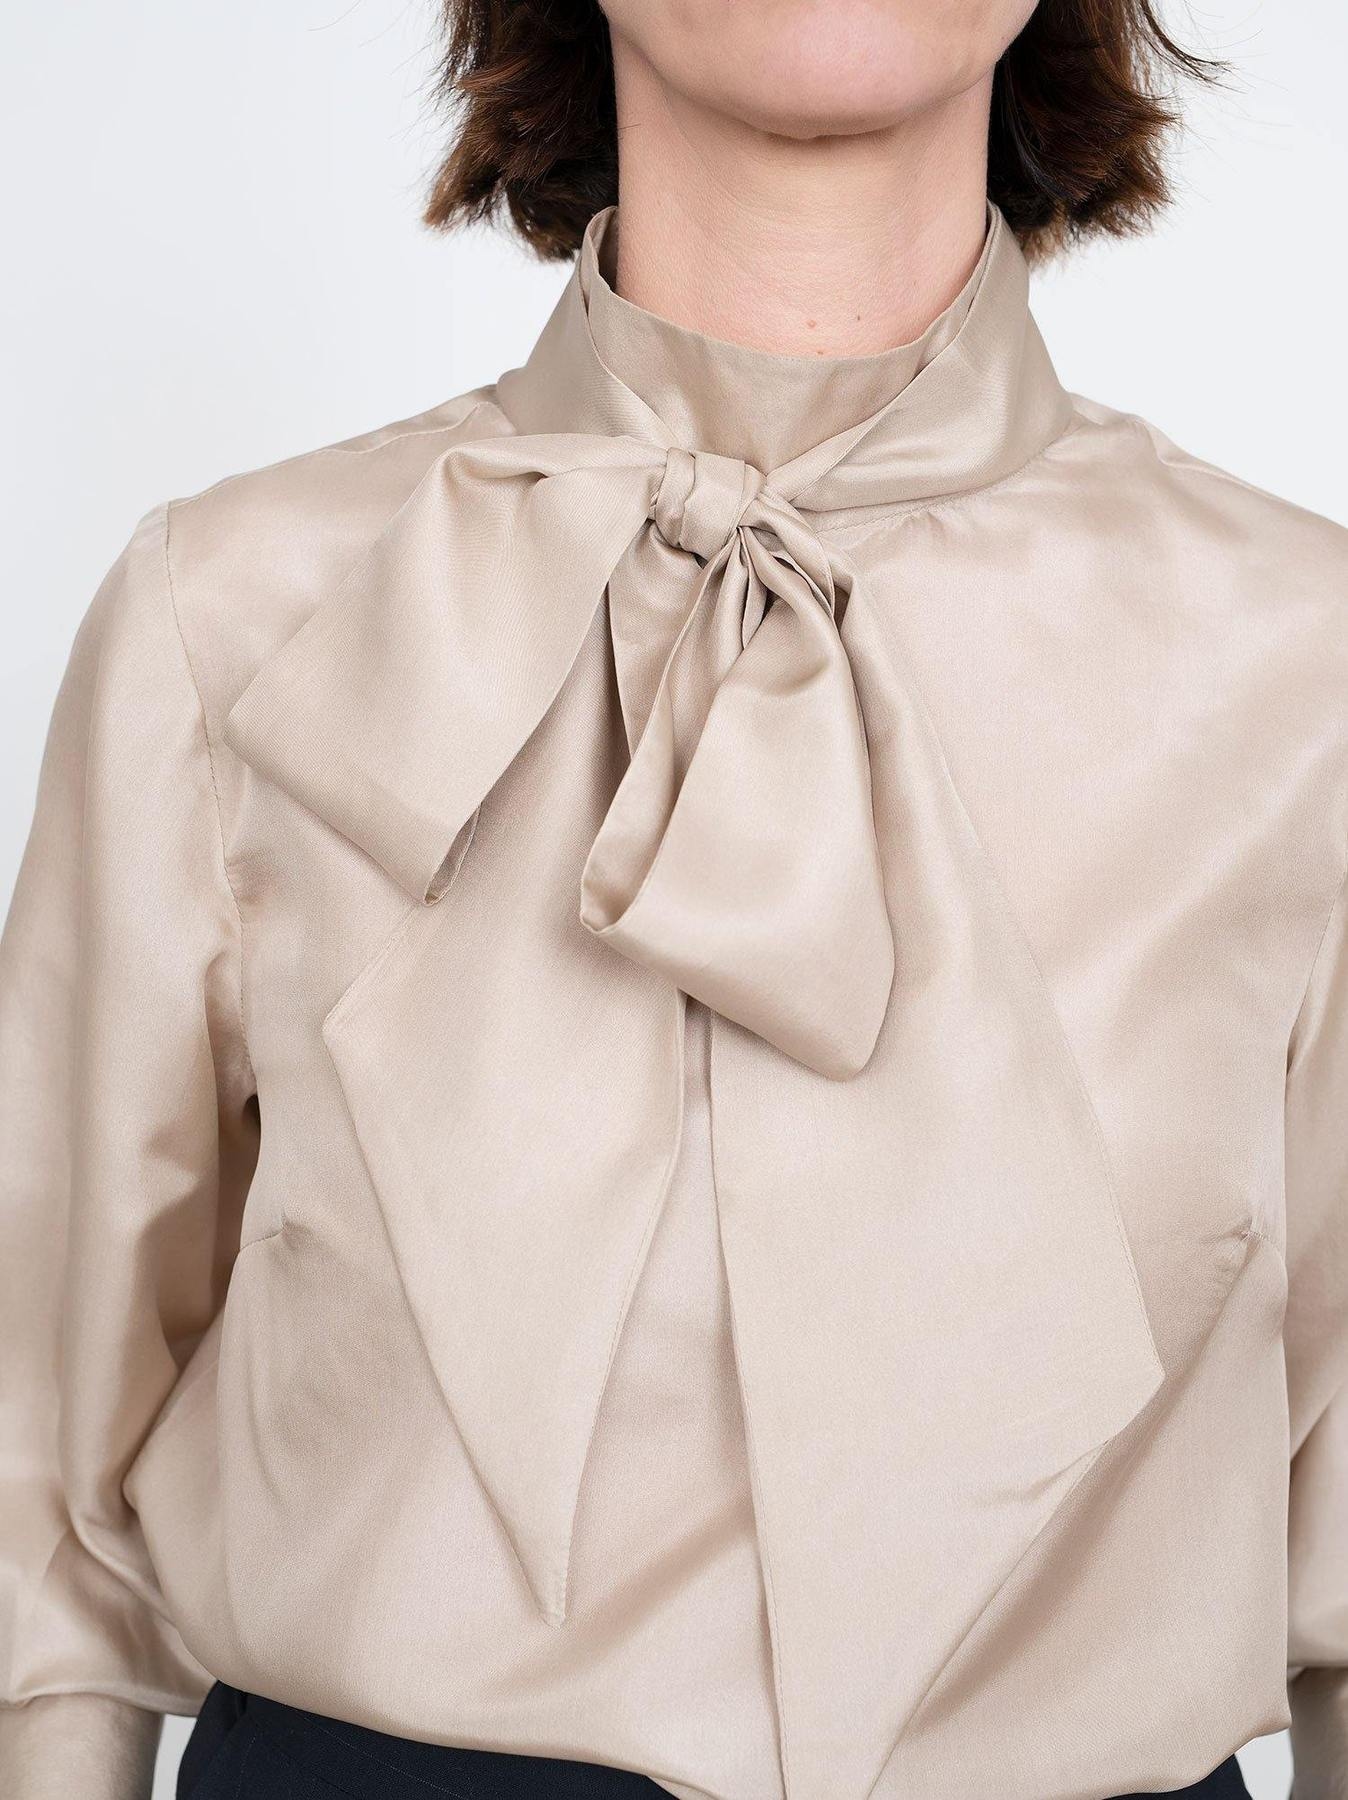 THE TIE BOW BLOUSE The assembly line TAL Stofftraeume4you NAH